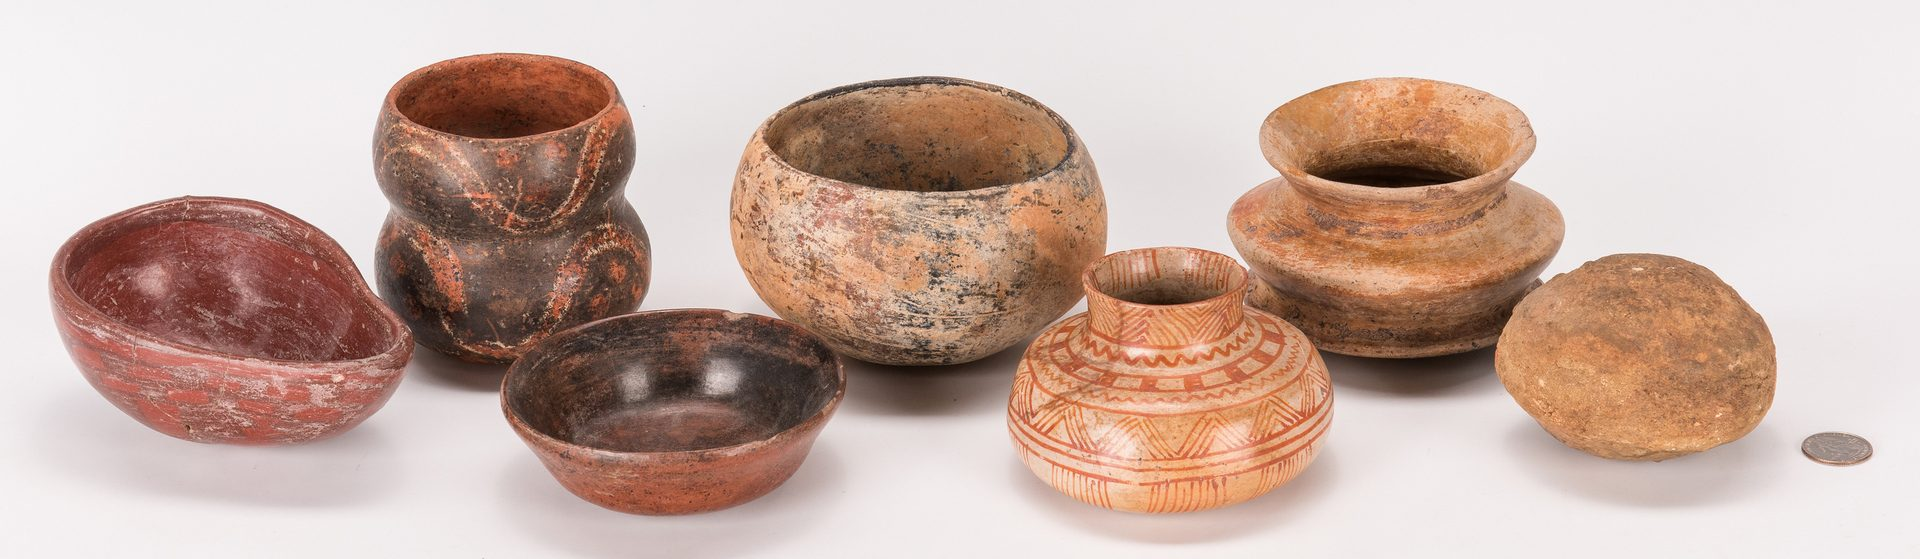 Lot 289: 6 Pre-Columbian Mesoamerican Items, incl. Pottery